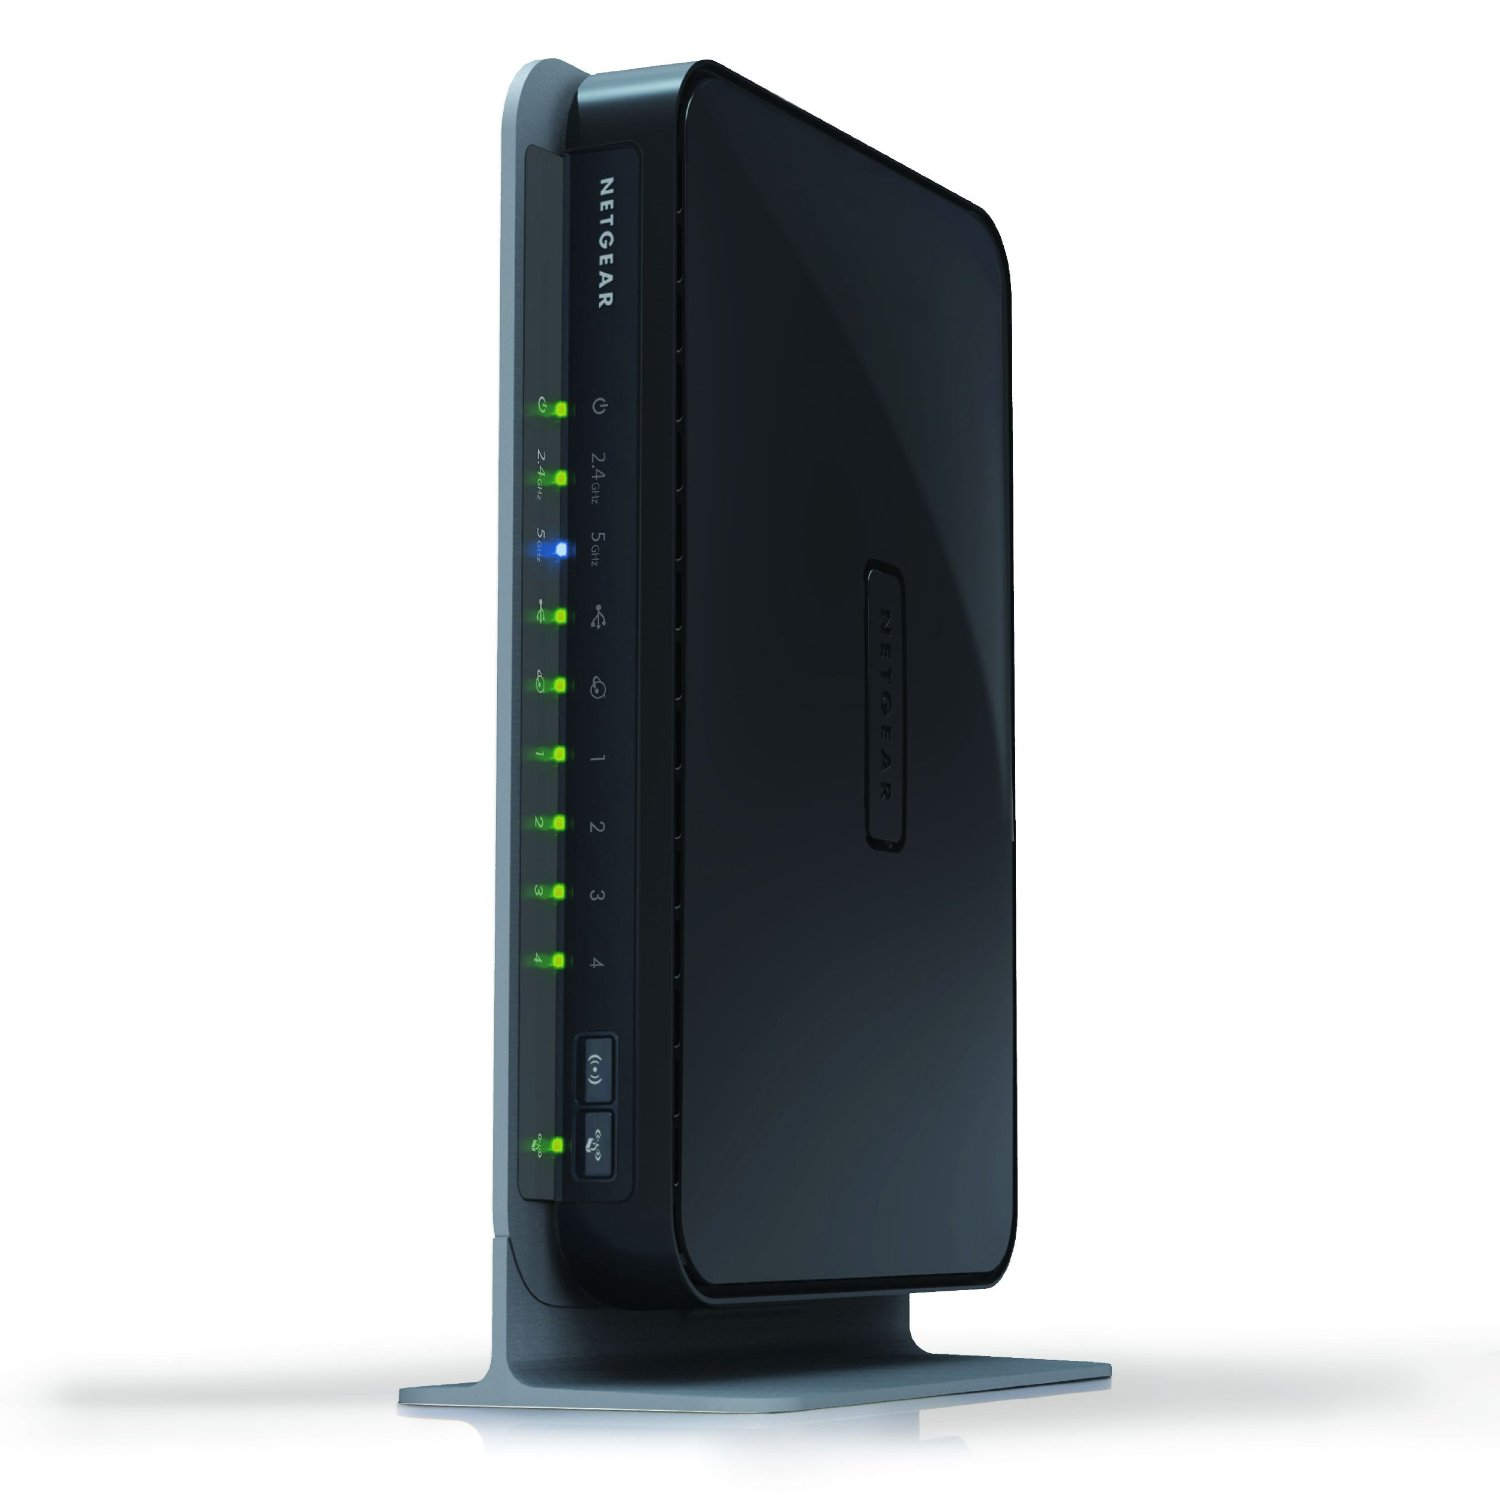 Netgear N600 Wndr3700 Wireless Router Dual Band Gigabit